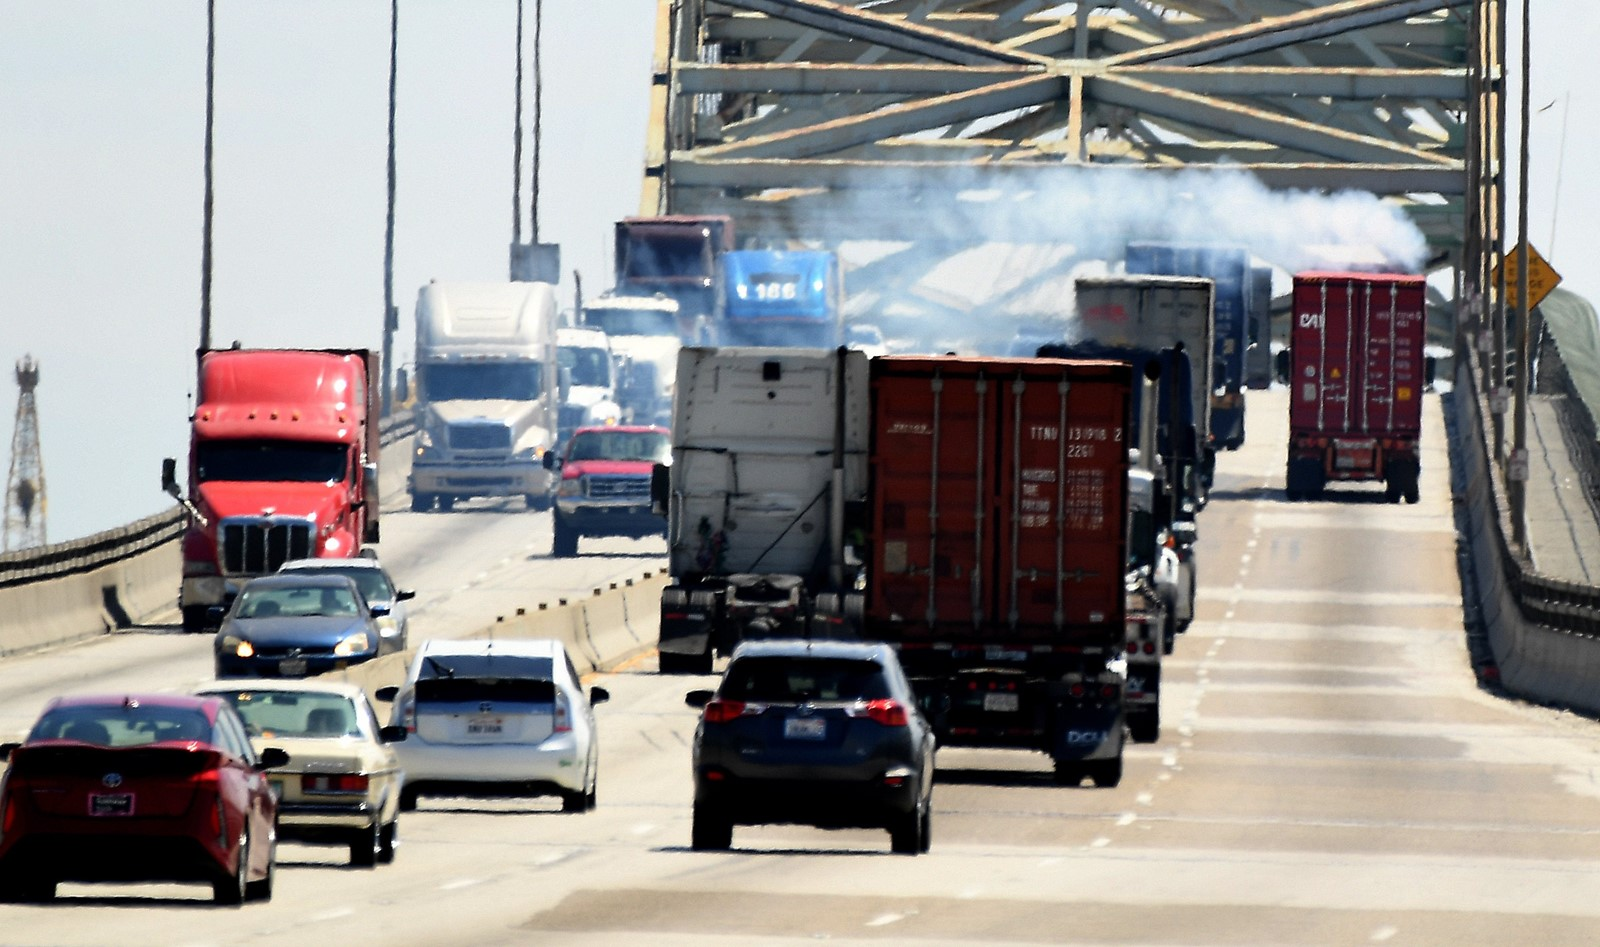 Lawmakers, including Republicans, and most of the trucking industry oppose plans to allow trucks that run on rebuilt diesel engines. — Photograph: Wally Skalij/Los Angeles Times.